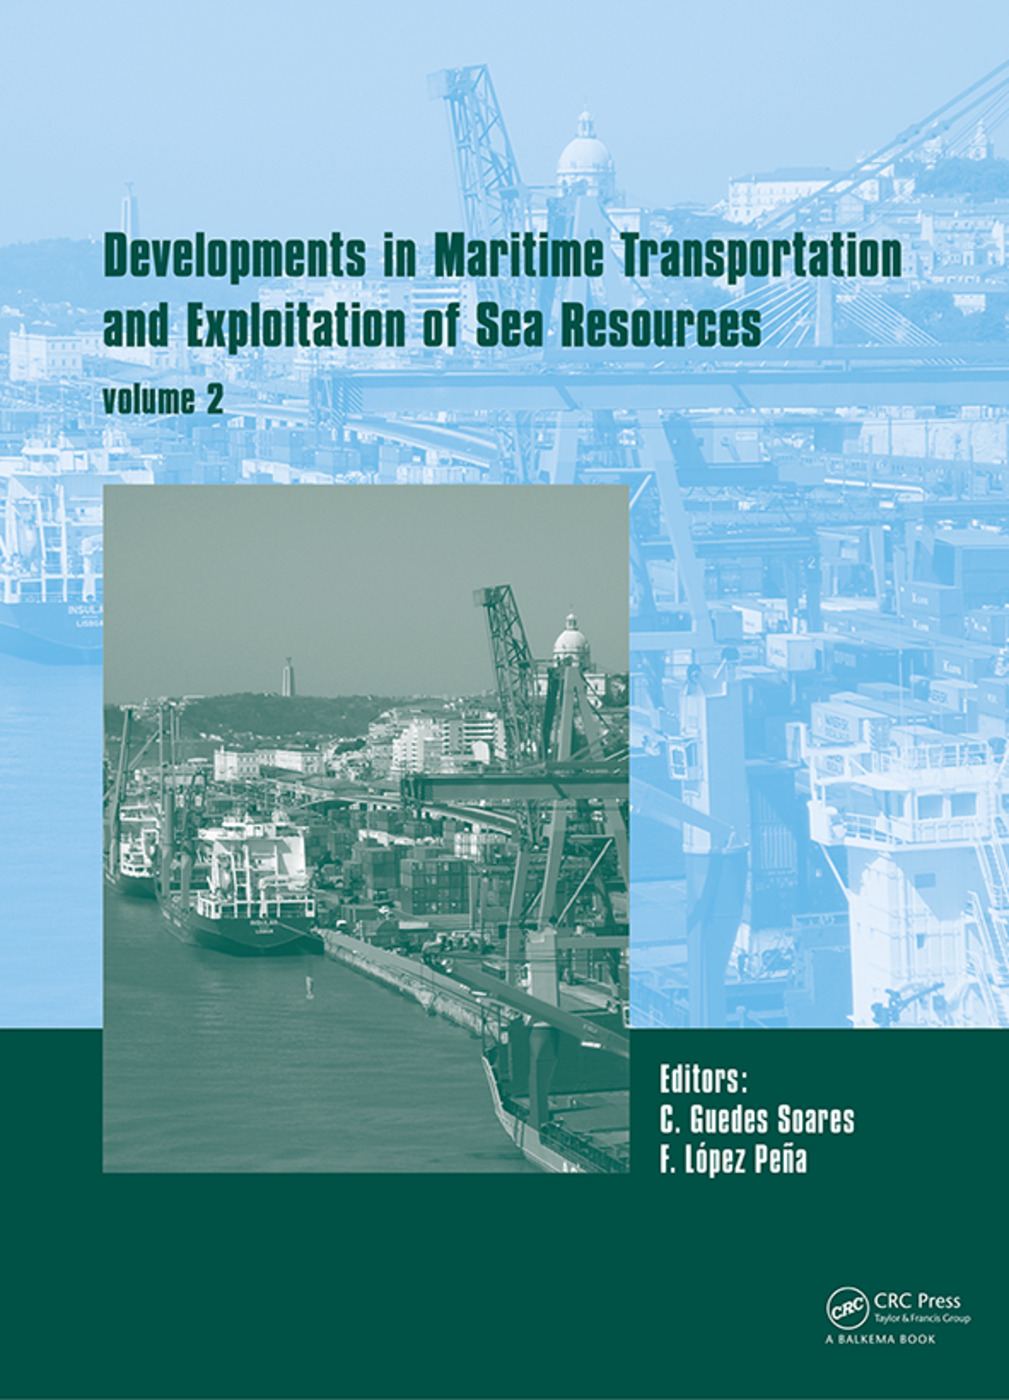 Developments in Maritime Transportation and Harvesting of Sea Resources (Volume 2): Proceedings of the 17th International Congress of the International Maritime Association of the Mediterranean (IMAM 2017), October 9-11, 2017, Lisbon, Portugal, 1st Edition (Hardback) book cover